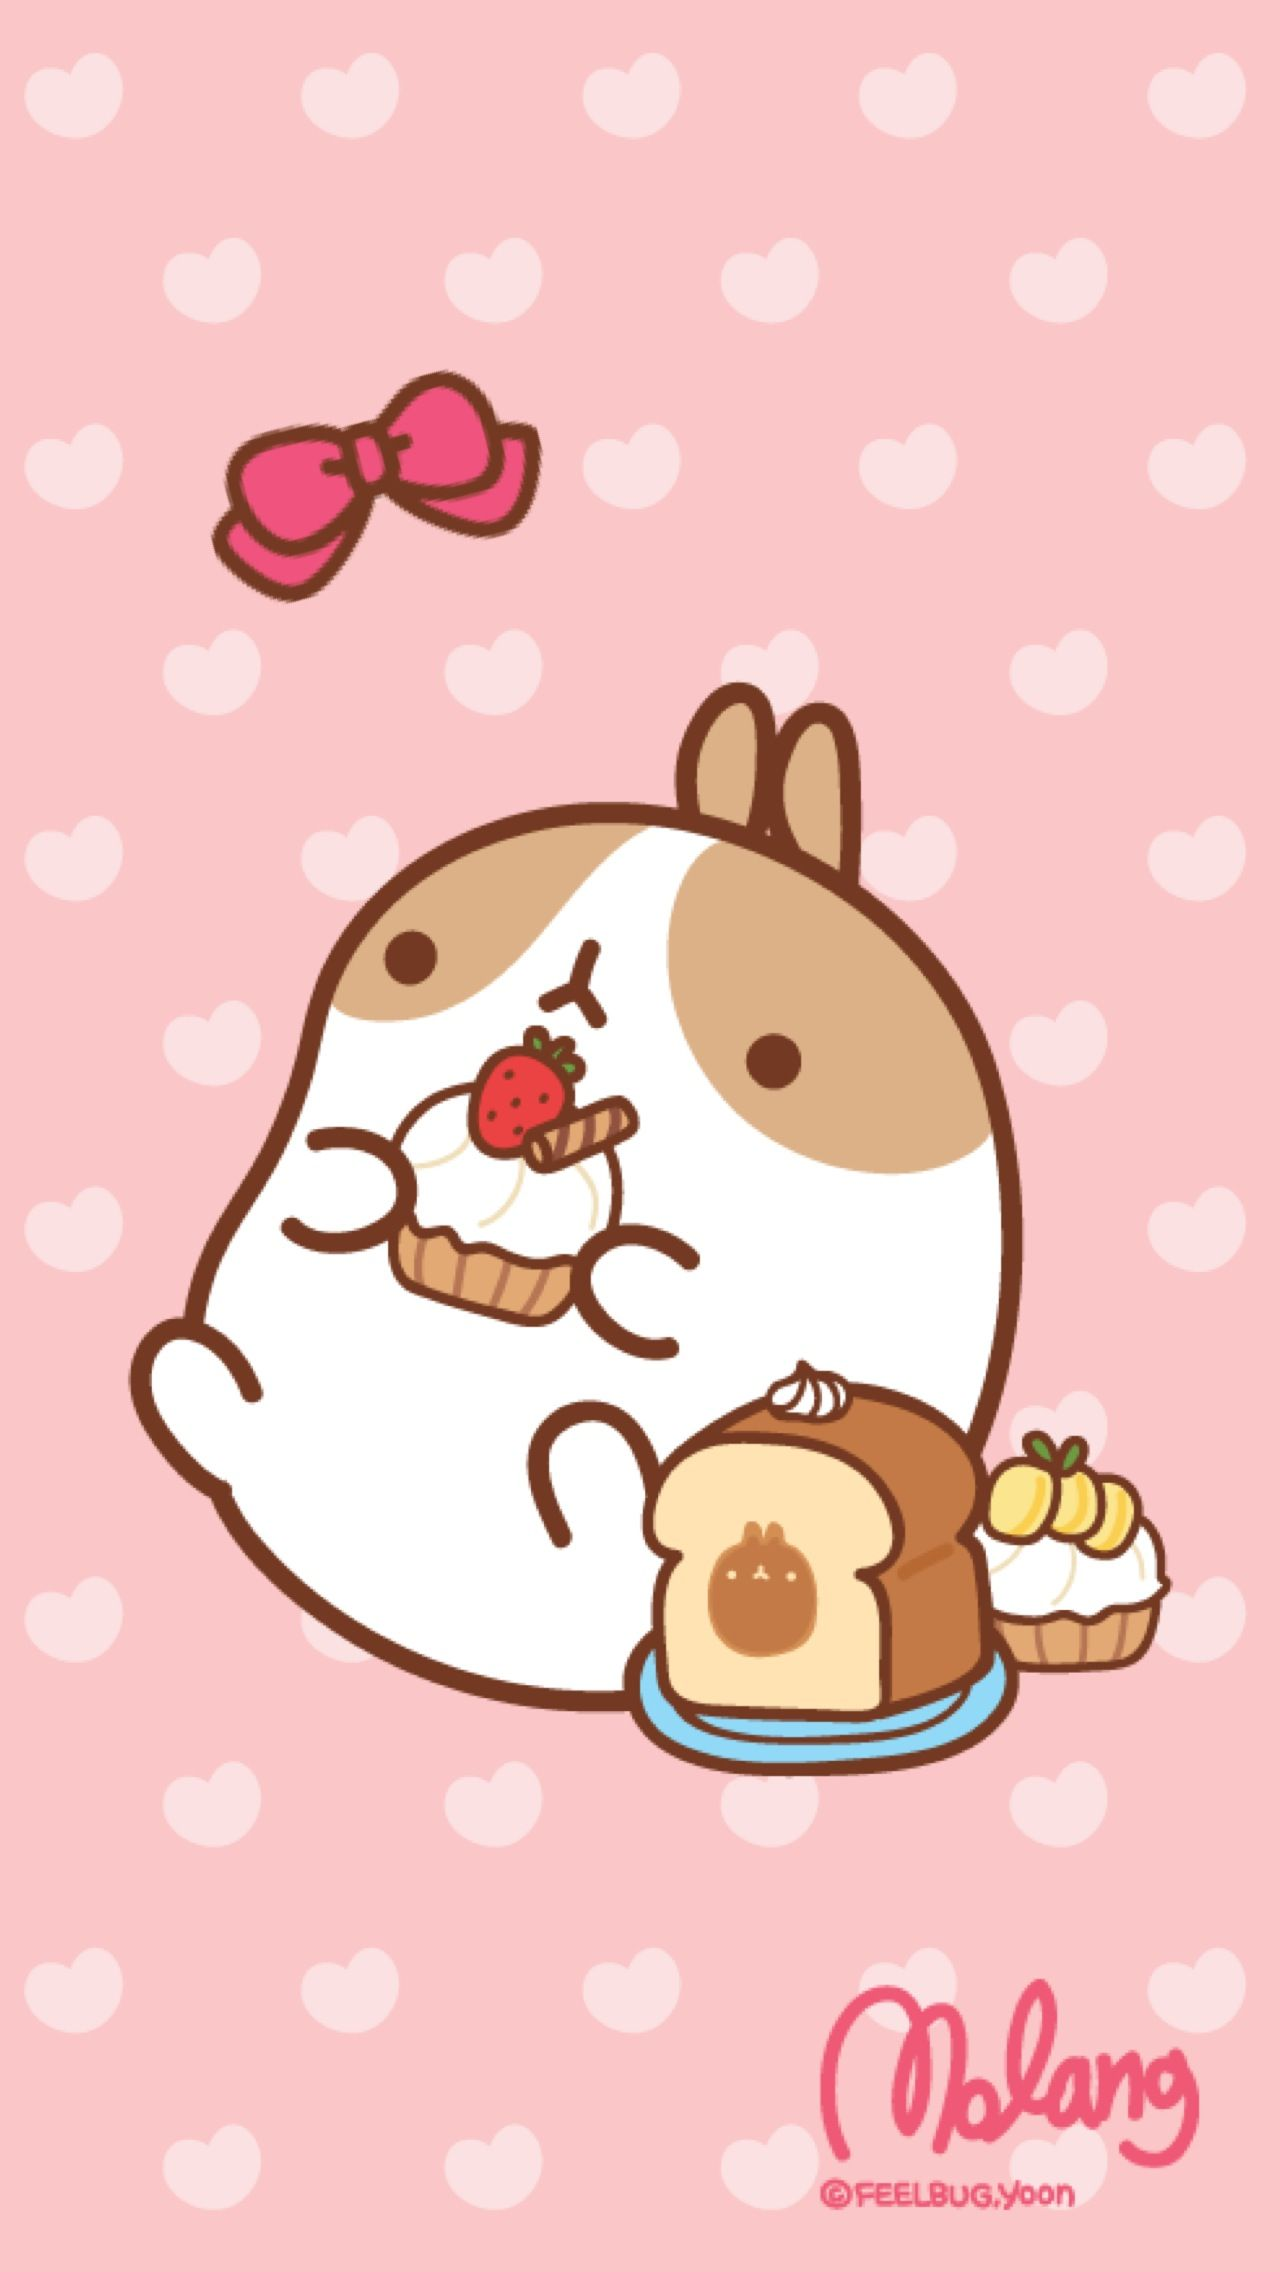 Molang cupcake lock screen kawaii cute pinterest - Kawaii food wallpaper ...